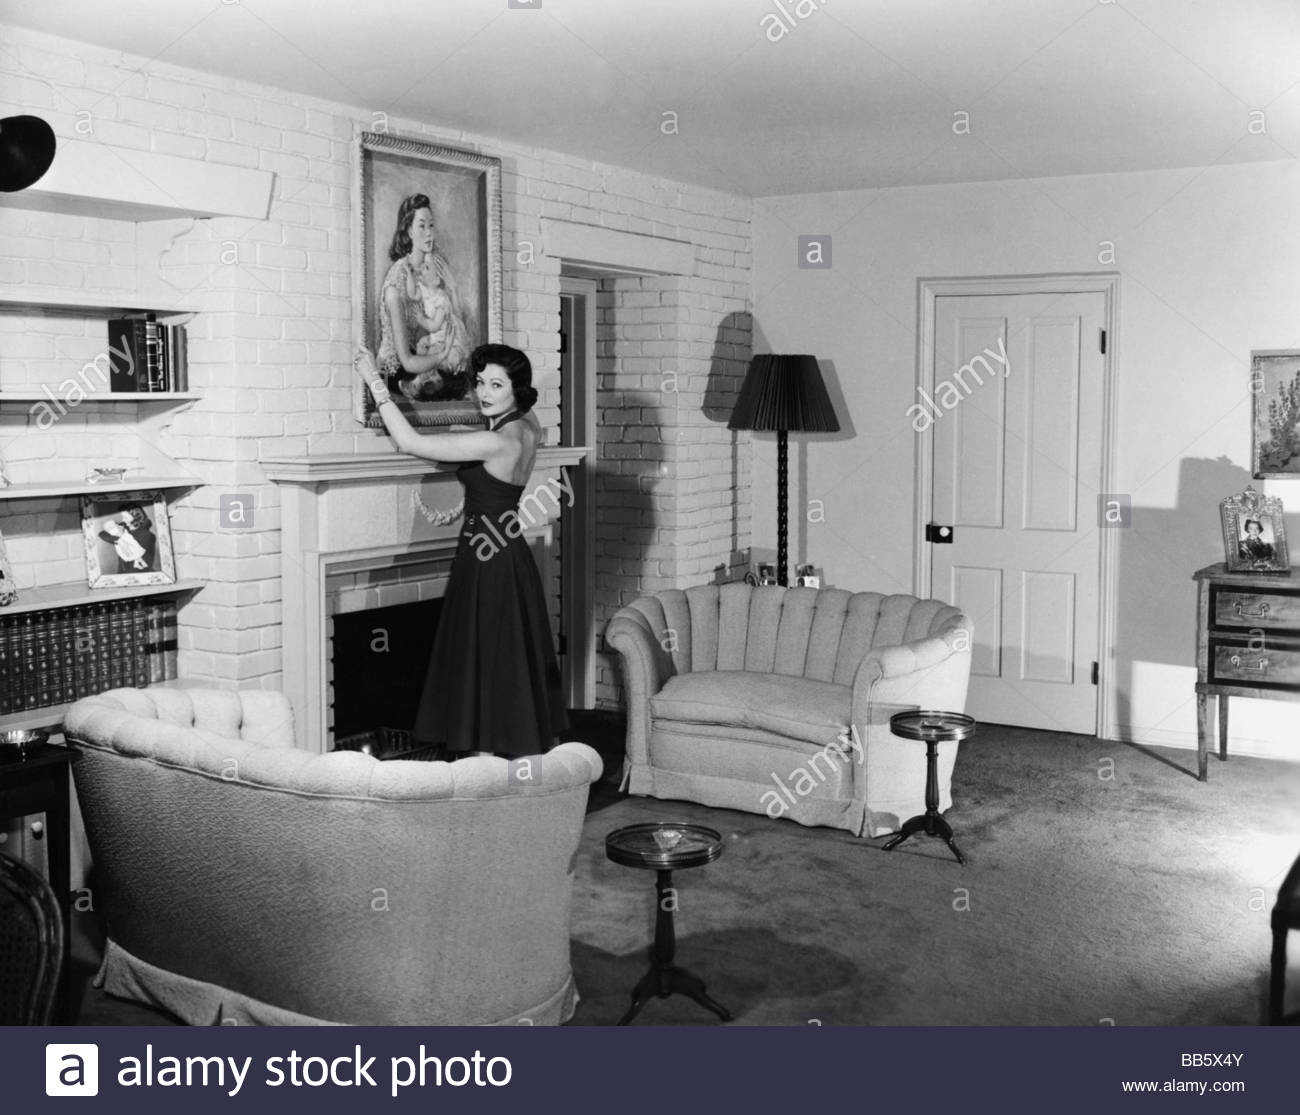 Exceptional Tierney, Gene, 19.11.1920   6.11.1991, American Actress, Half Length,  Homestory, 1950s, Private, At Home, Living Room, Salon, Pa